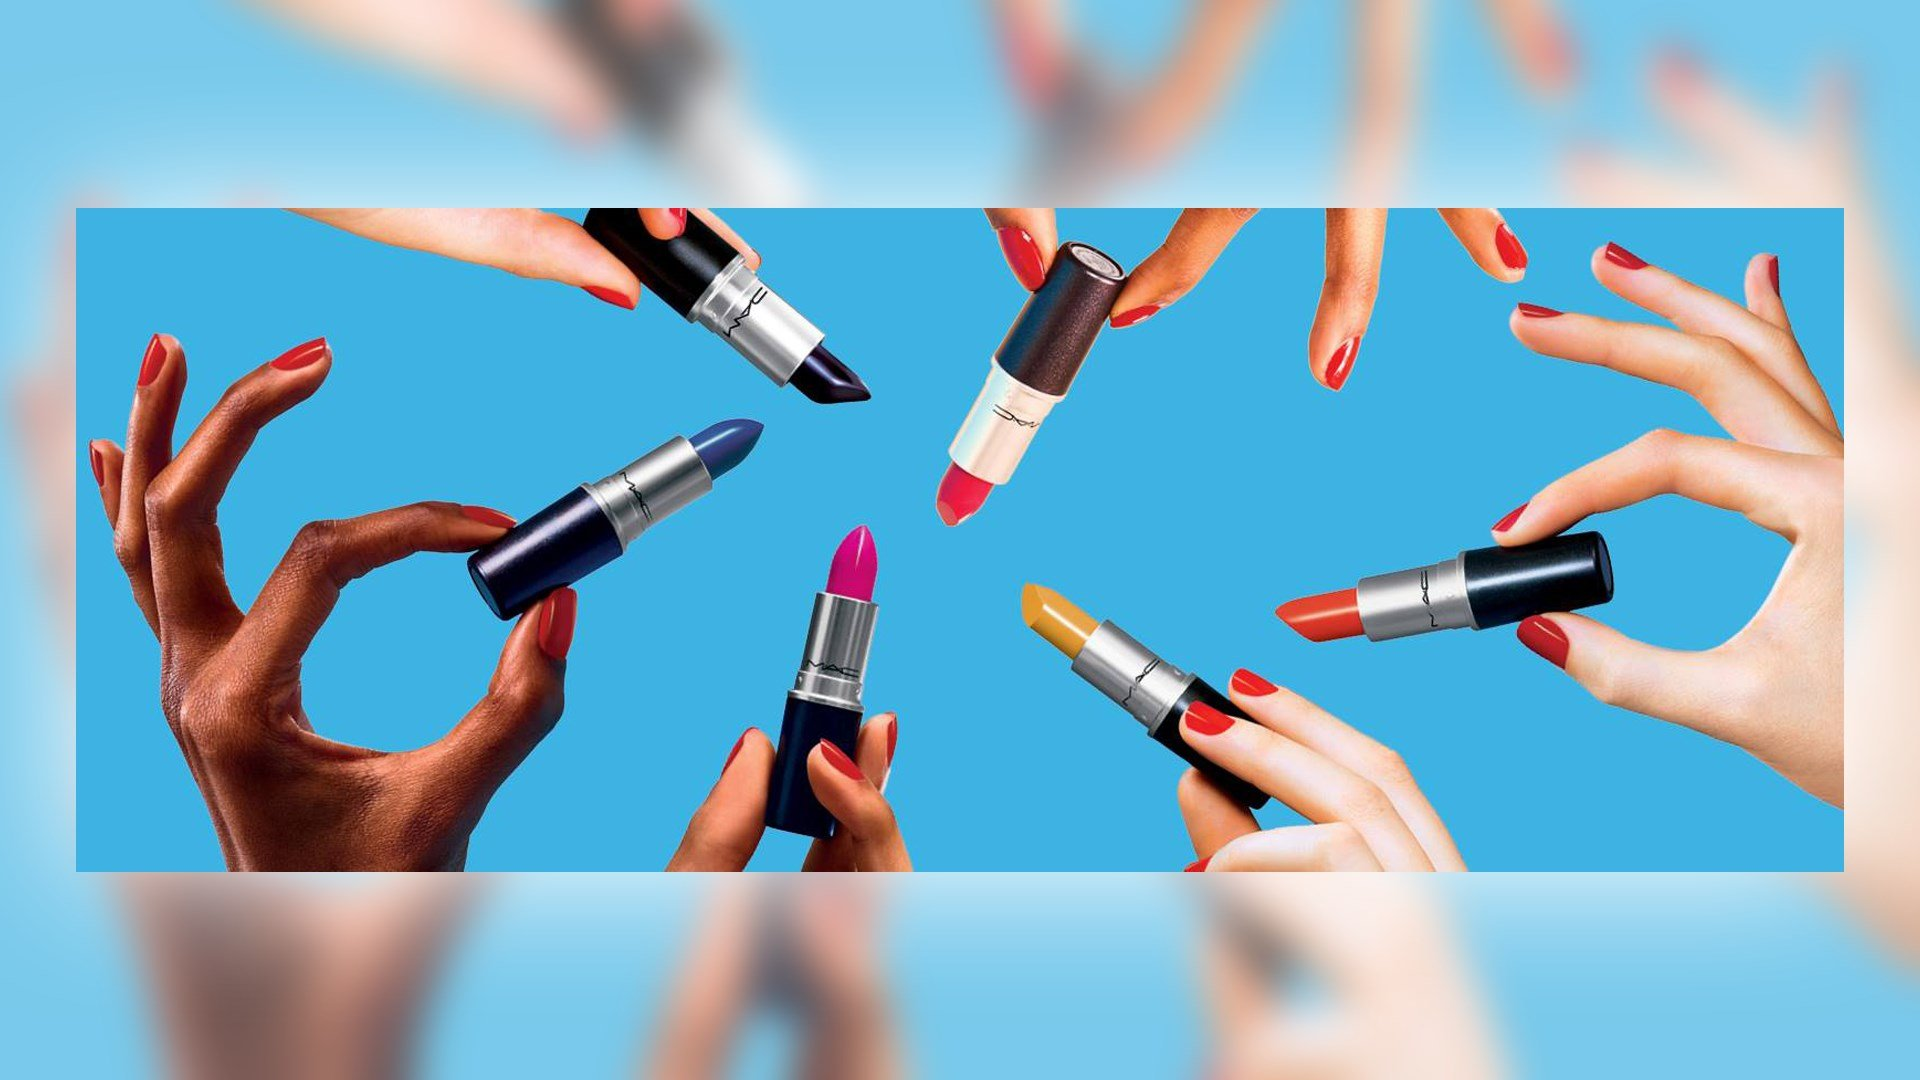 MAC Cosmetics giving out free lipstick for National Lipstick Day 2018